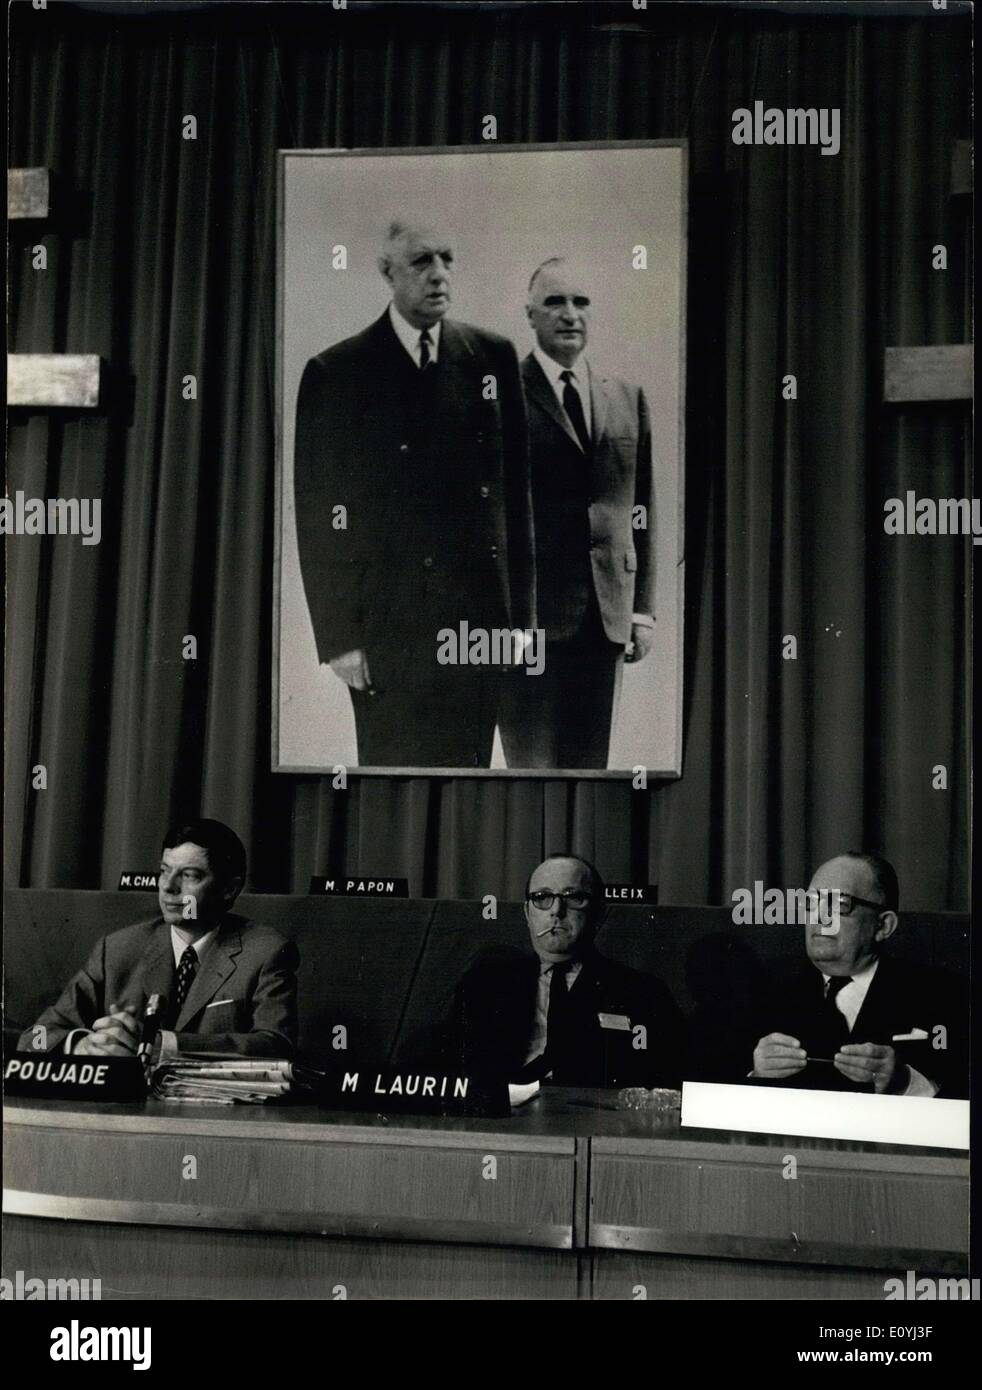 Jun. 25, 1970 - The National Council of the Union of Democrats for the Republic opened today in Versailles in the presence of many government officials. Poujade is the General Secretary of the party. Laurin is the Hauts-de-Seine representative, and Schumann is the Foreign Affairs Minister. - Stock Image